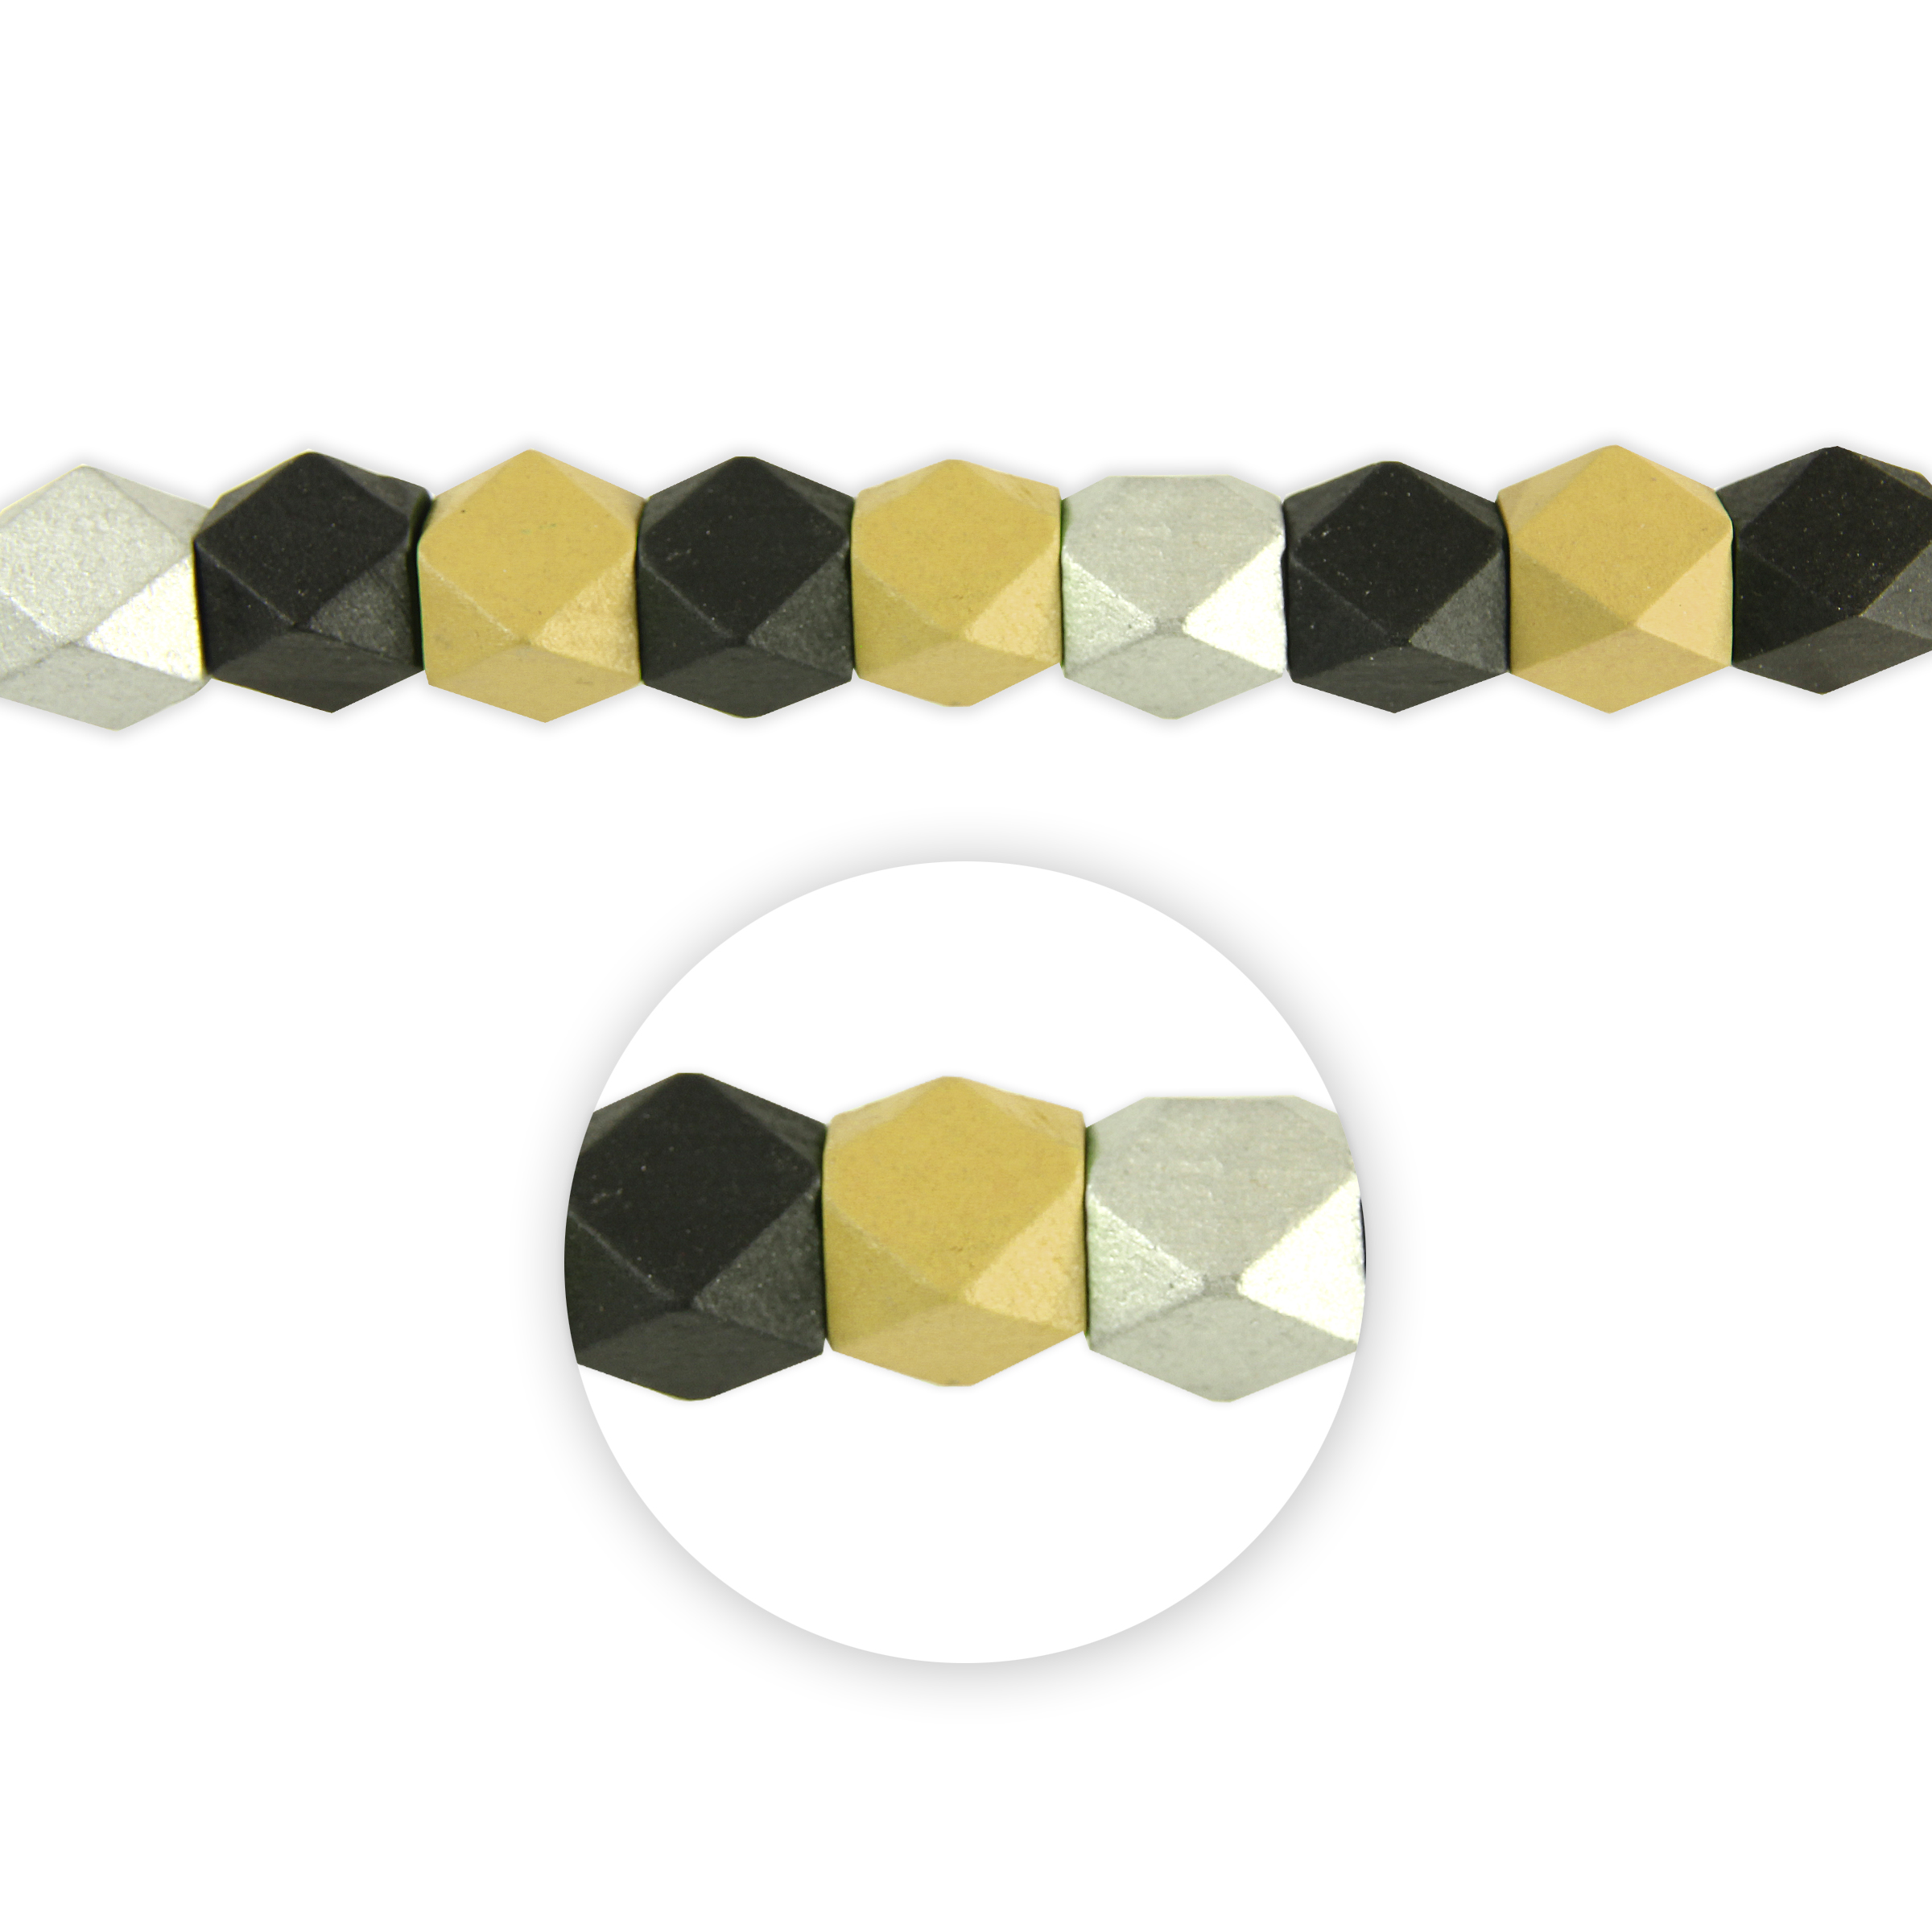 Blue Moon Beads Strand 7\u0022 Wood Cube/Polygon, Black Multi, Painted